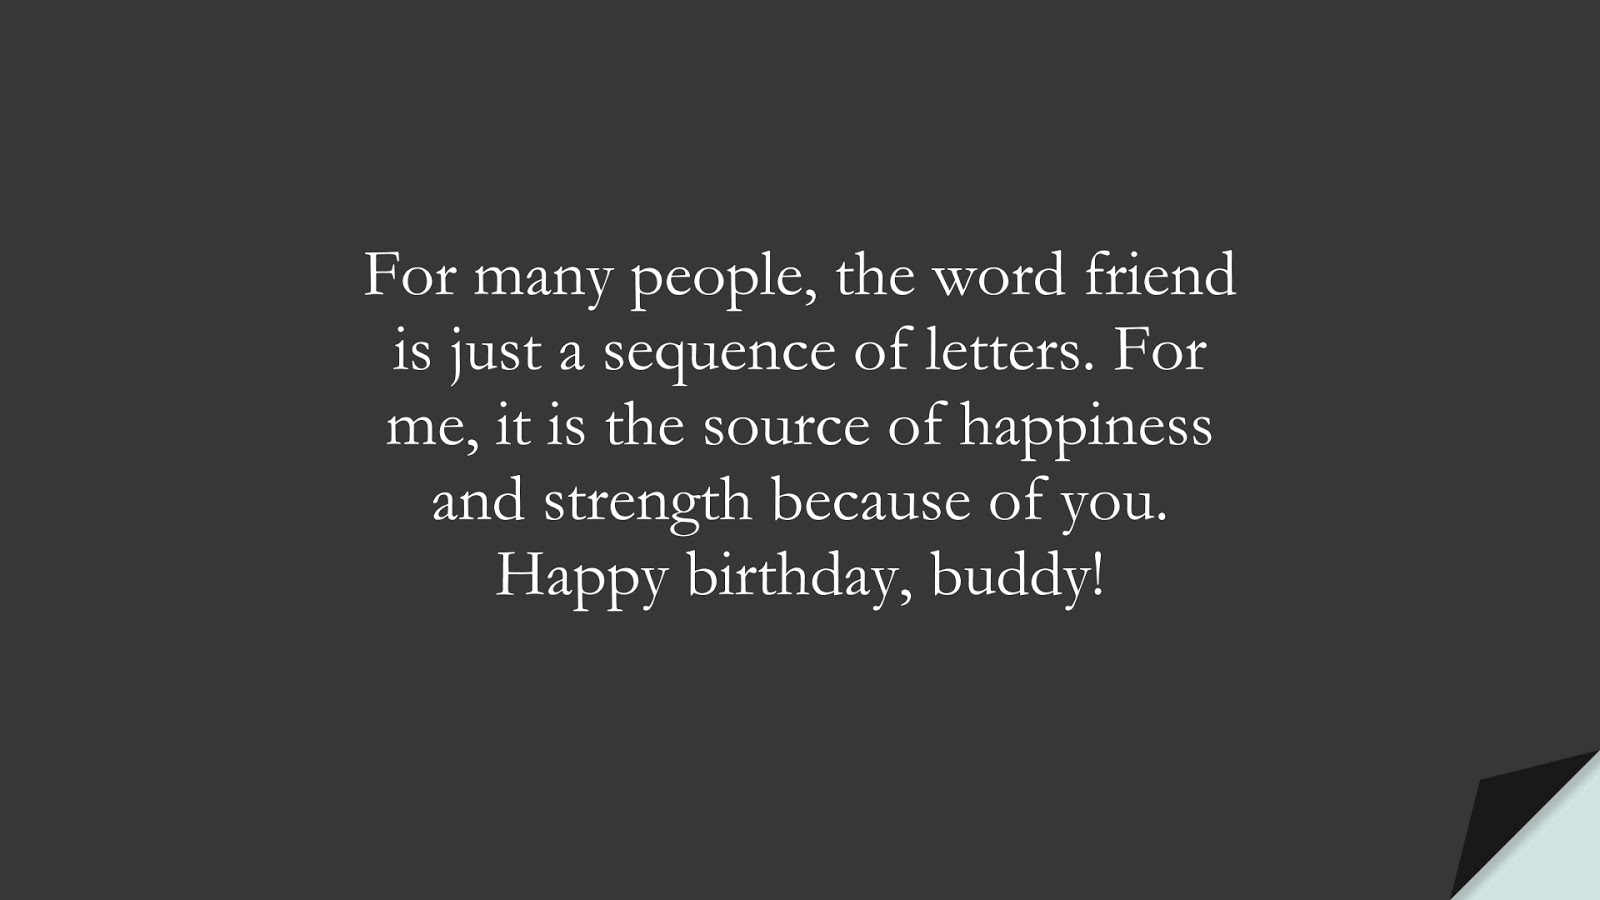 For many people, the word friend is just a sequence of letters. For me, it is the source of happiness and strength because of you. Happy birthday, buddy!FALSE